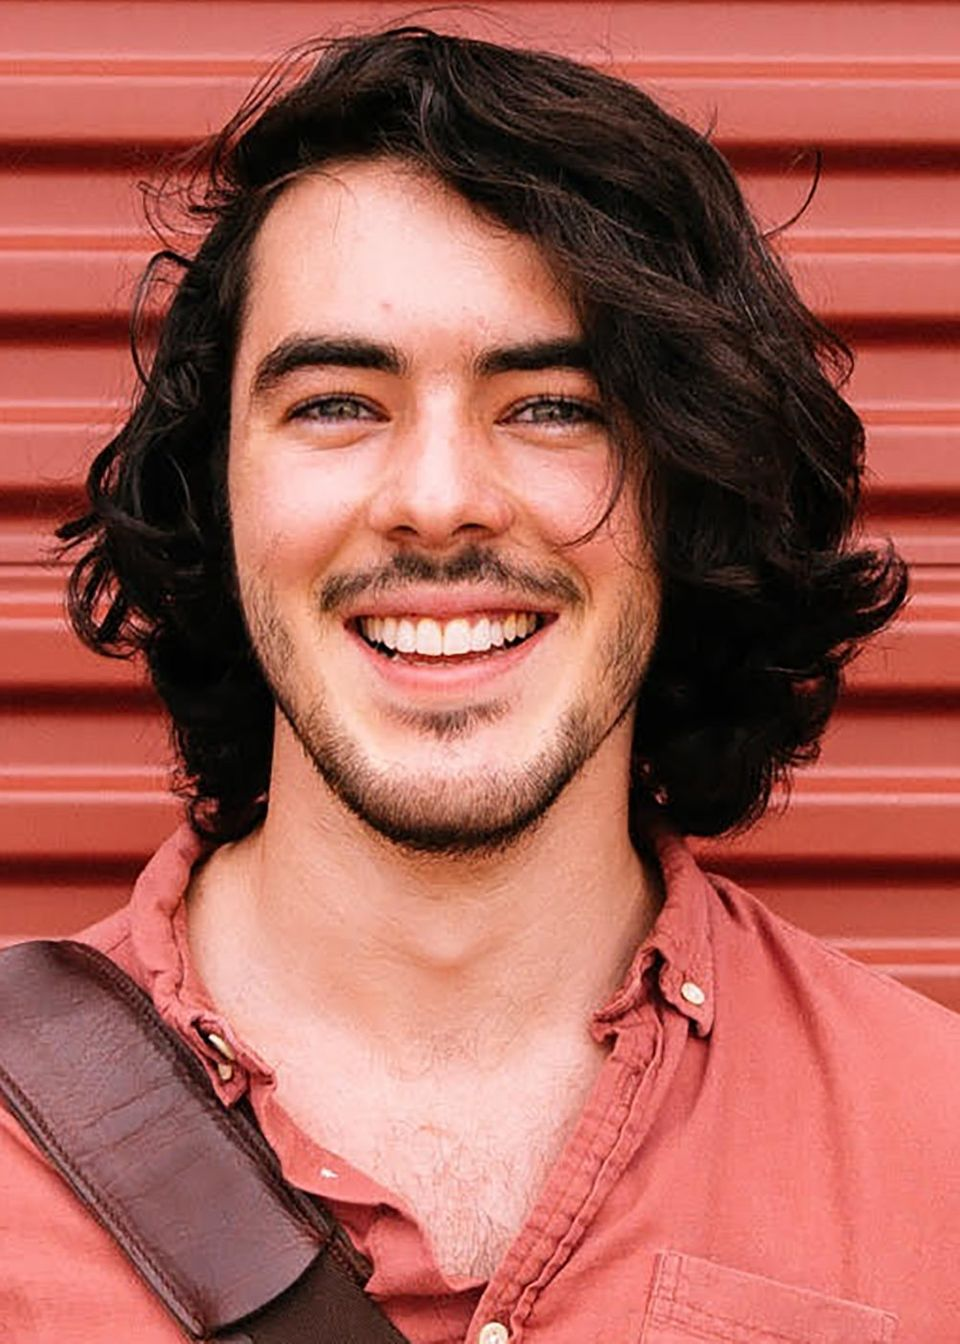 Connor Dwyer: A graphic designer from Georgia. He is one of the top three winners, who will be getting a paid trip to Philade